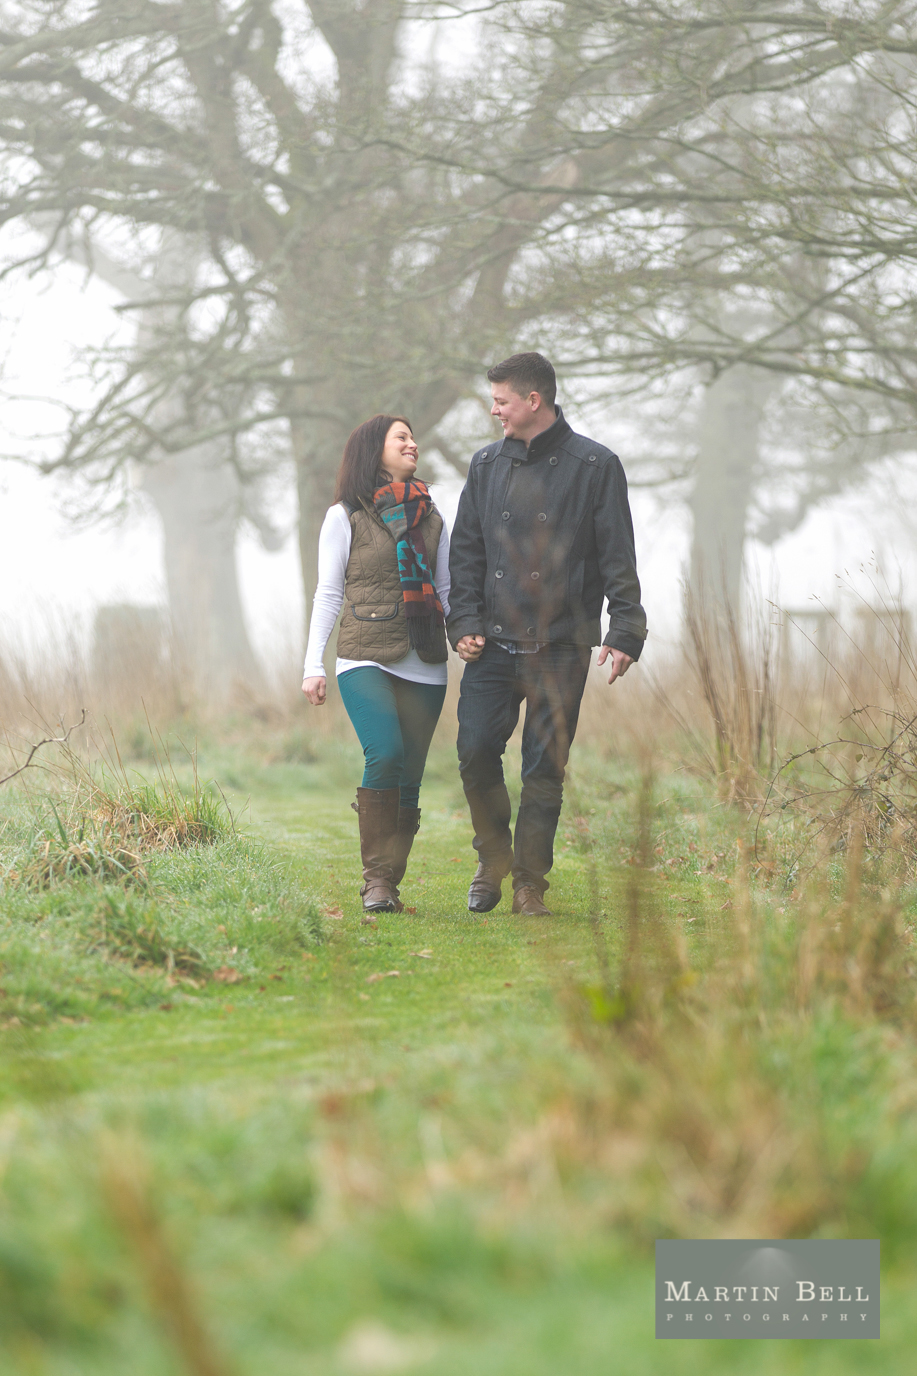 Wedding photography East Close Hotel, Christchurch, New Forest. Laura and Jamie's engagement photo shoot in the mist - Martin Bell photography